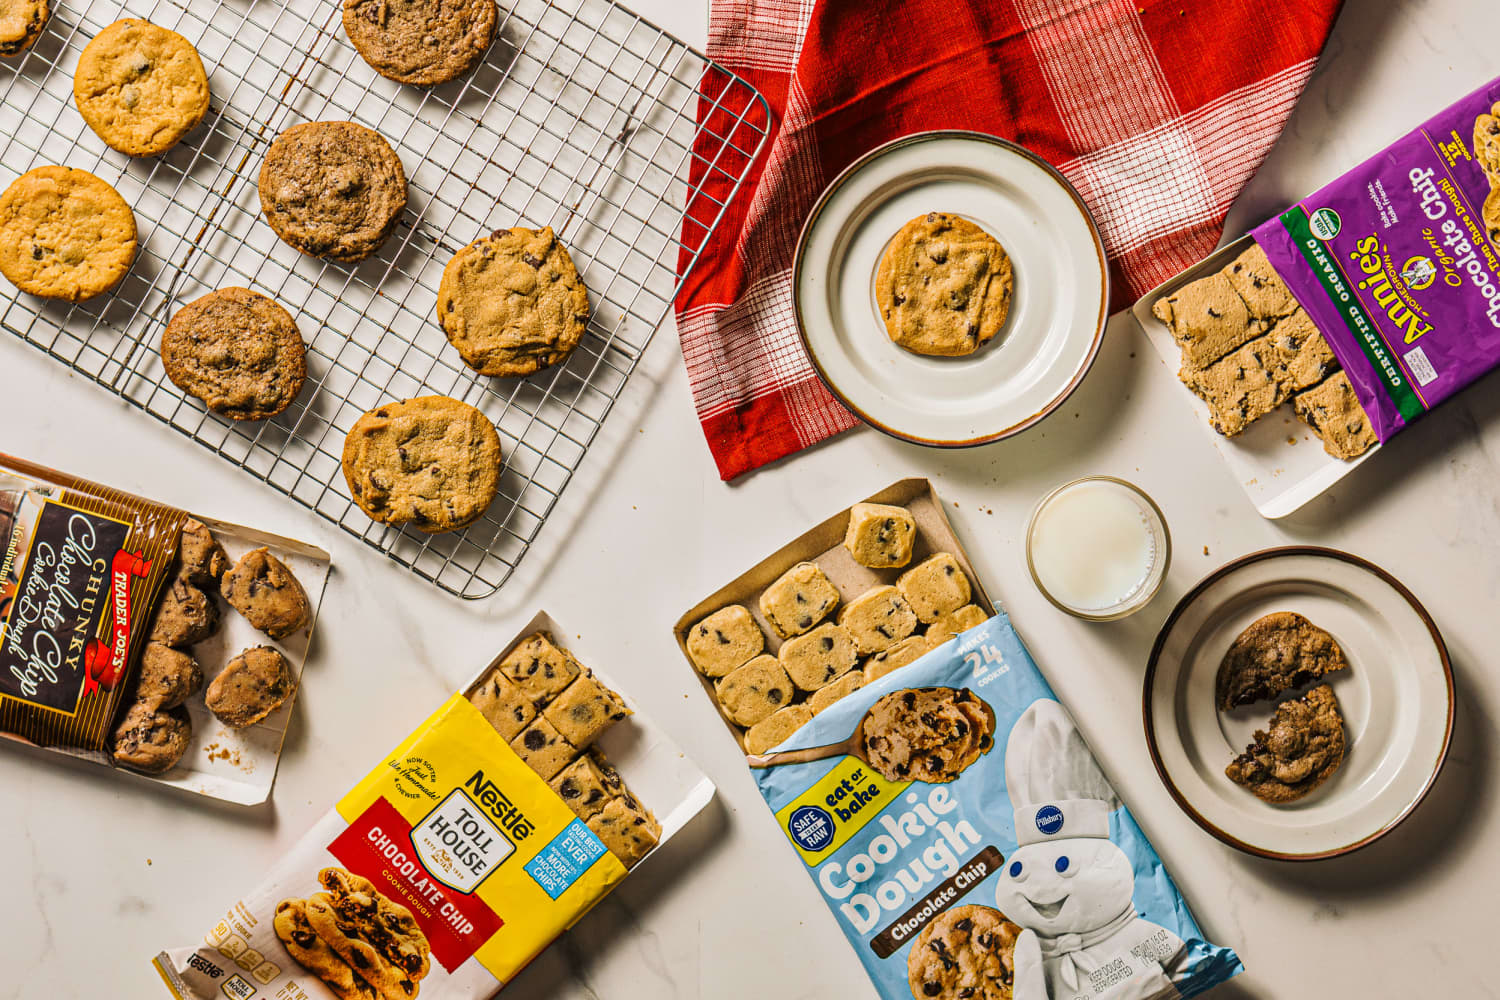 I Tried Every Package of Chocolate Chip Cookie Dough I Could Find — These Are the Two I'll Be Buying Again